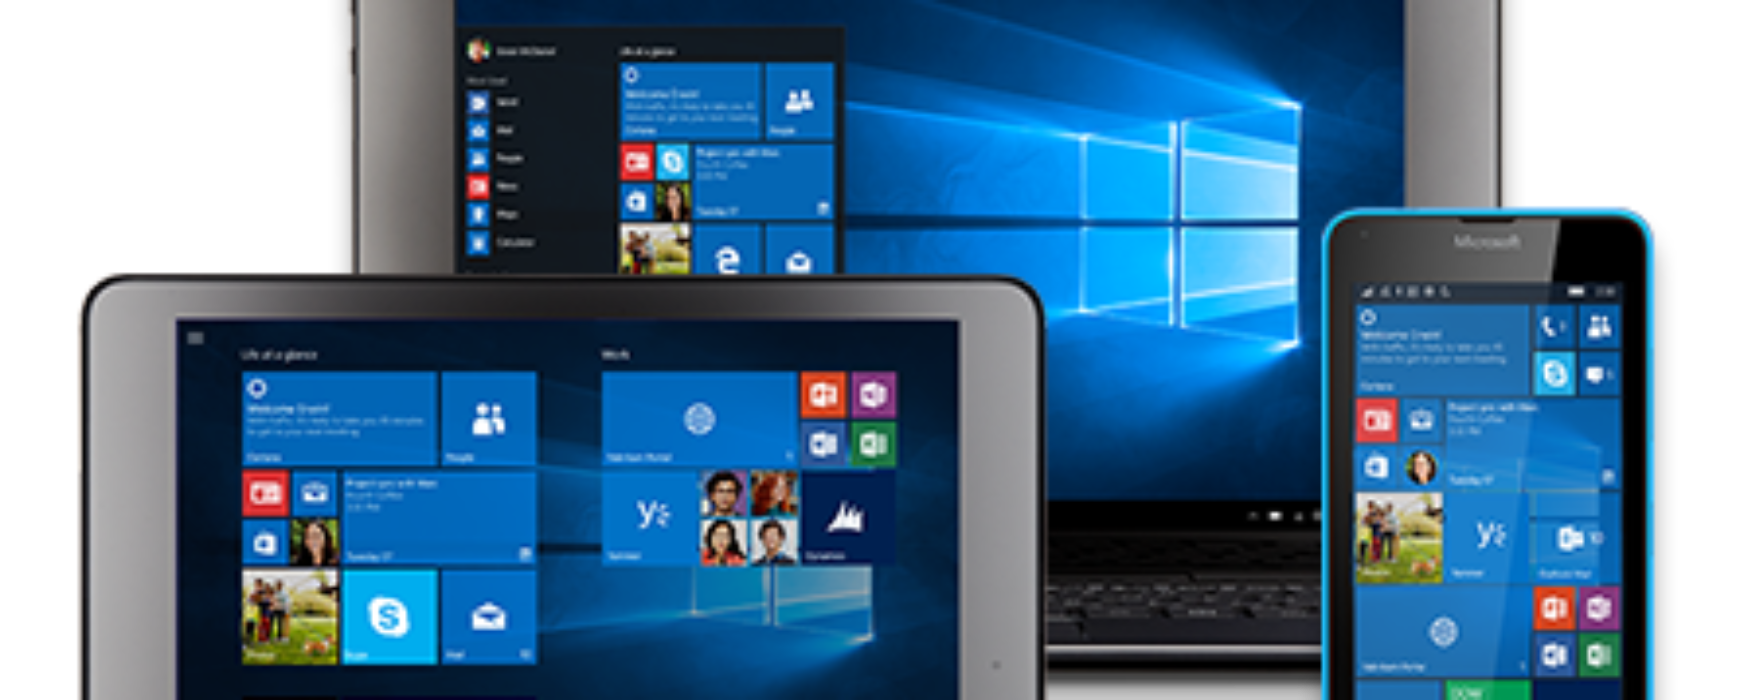 Windows 10 free upgrade offer ending in July